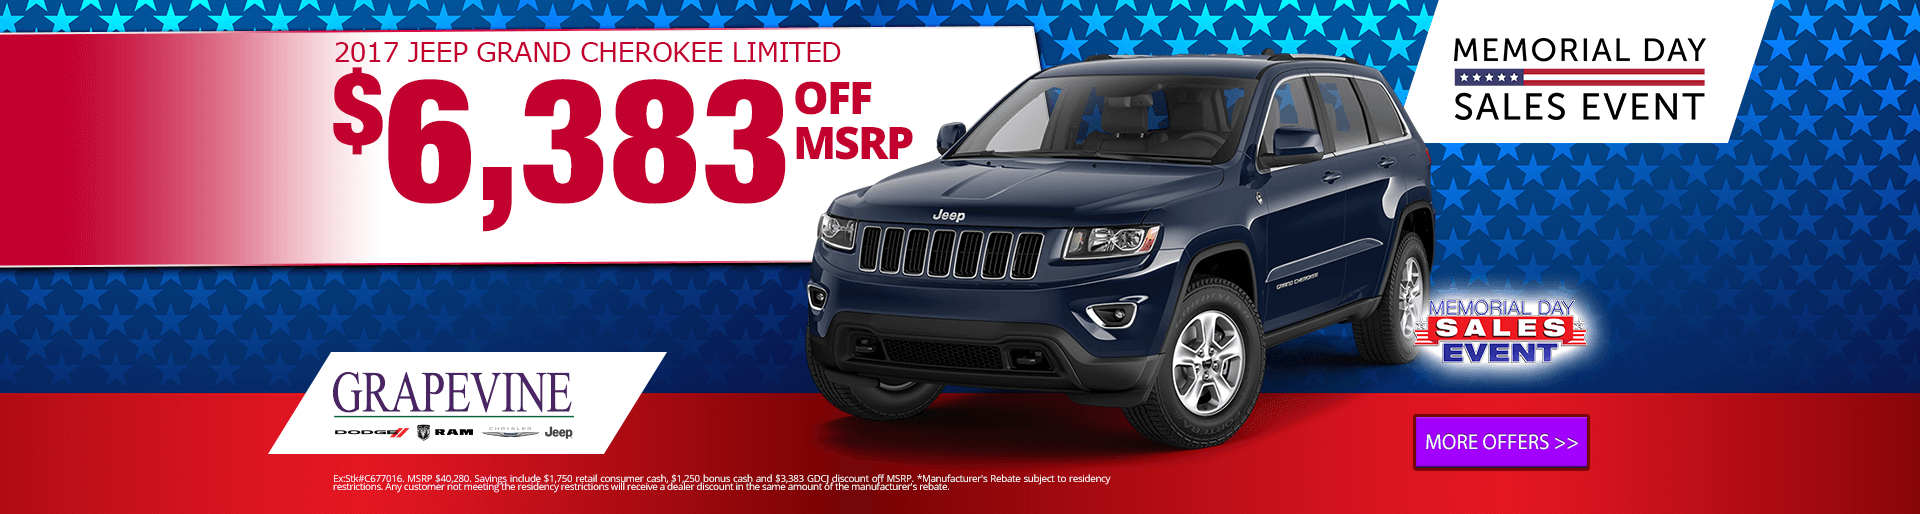 New Vehicle Specials In Dallas Tx Grapevine Chrysler